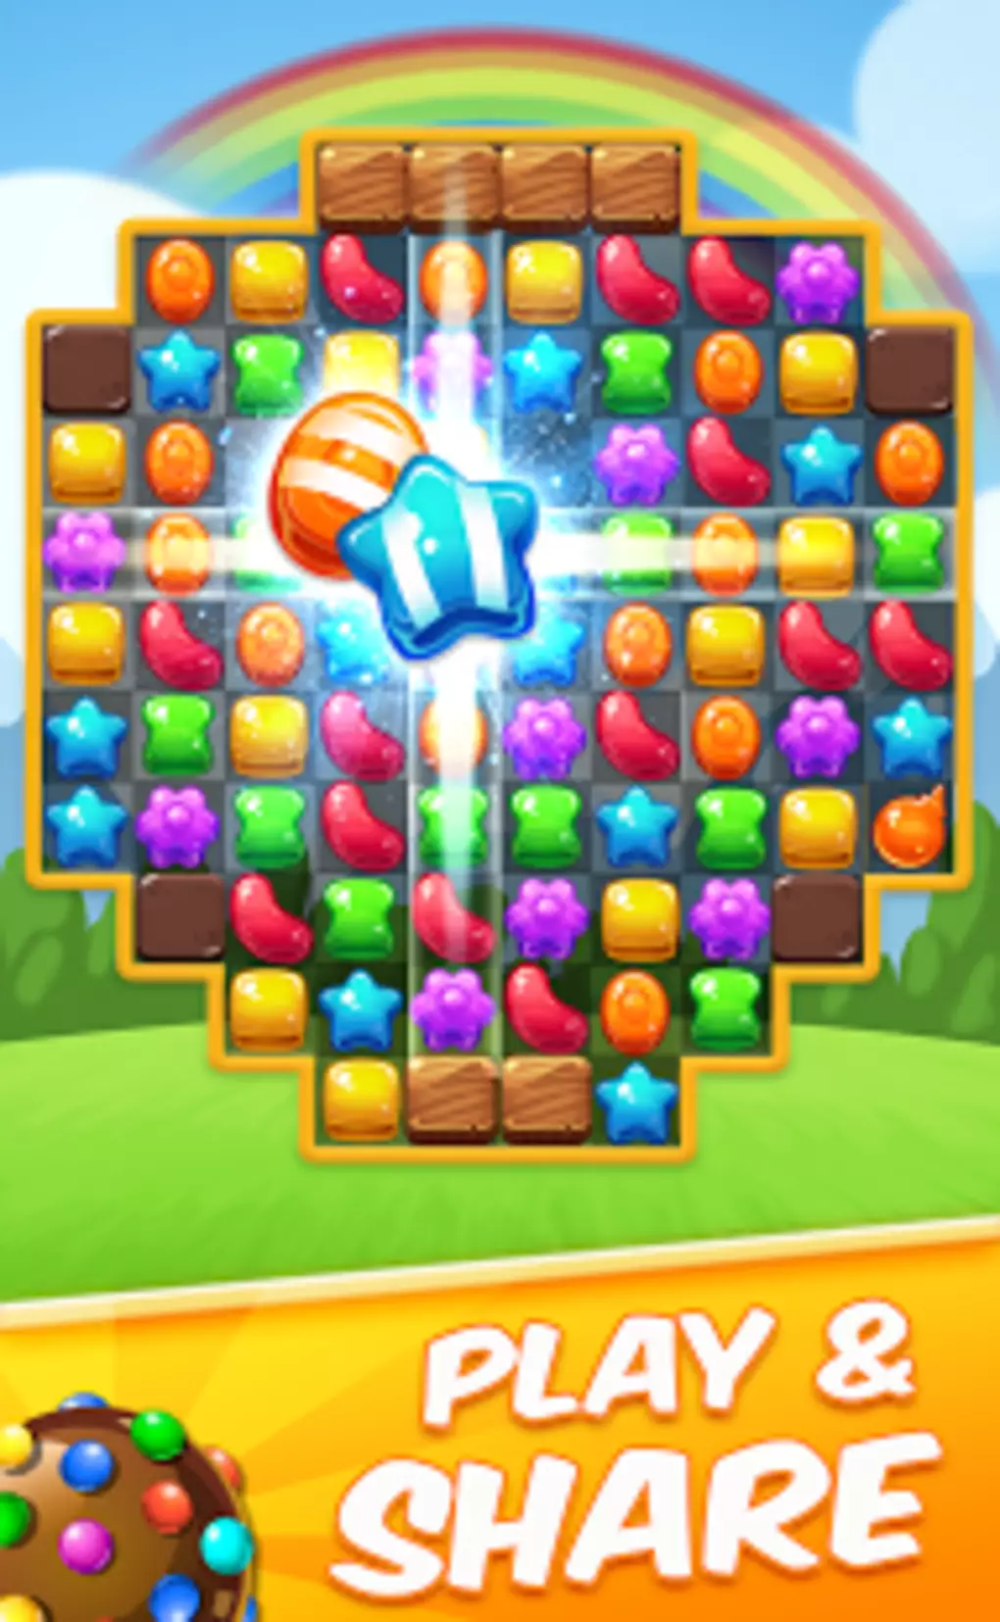 Cookie Crush Match 3 In 2020 Kings Game Free Puzzle Games Match 3